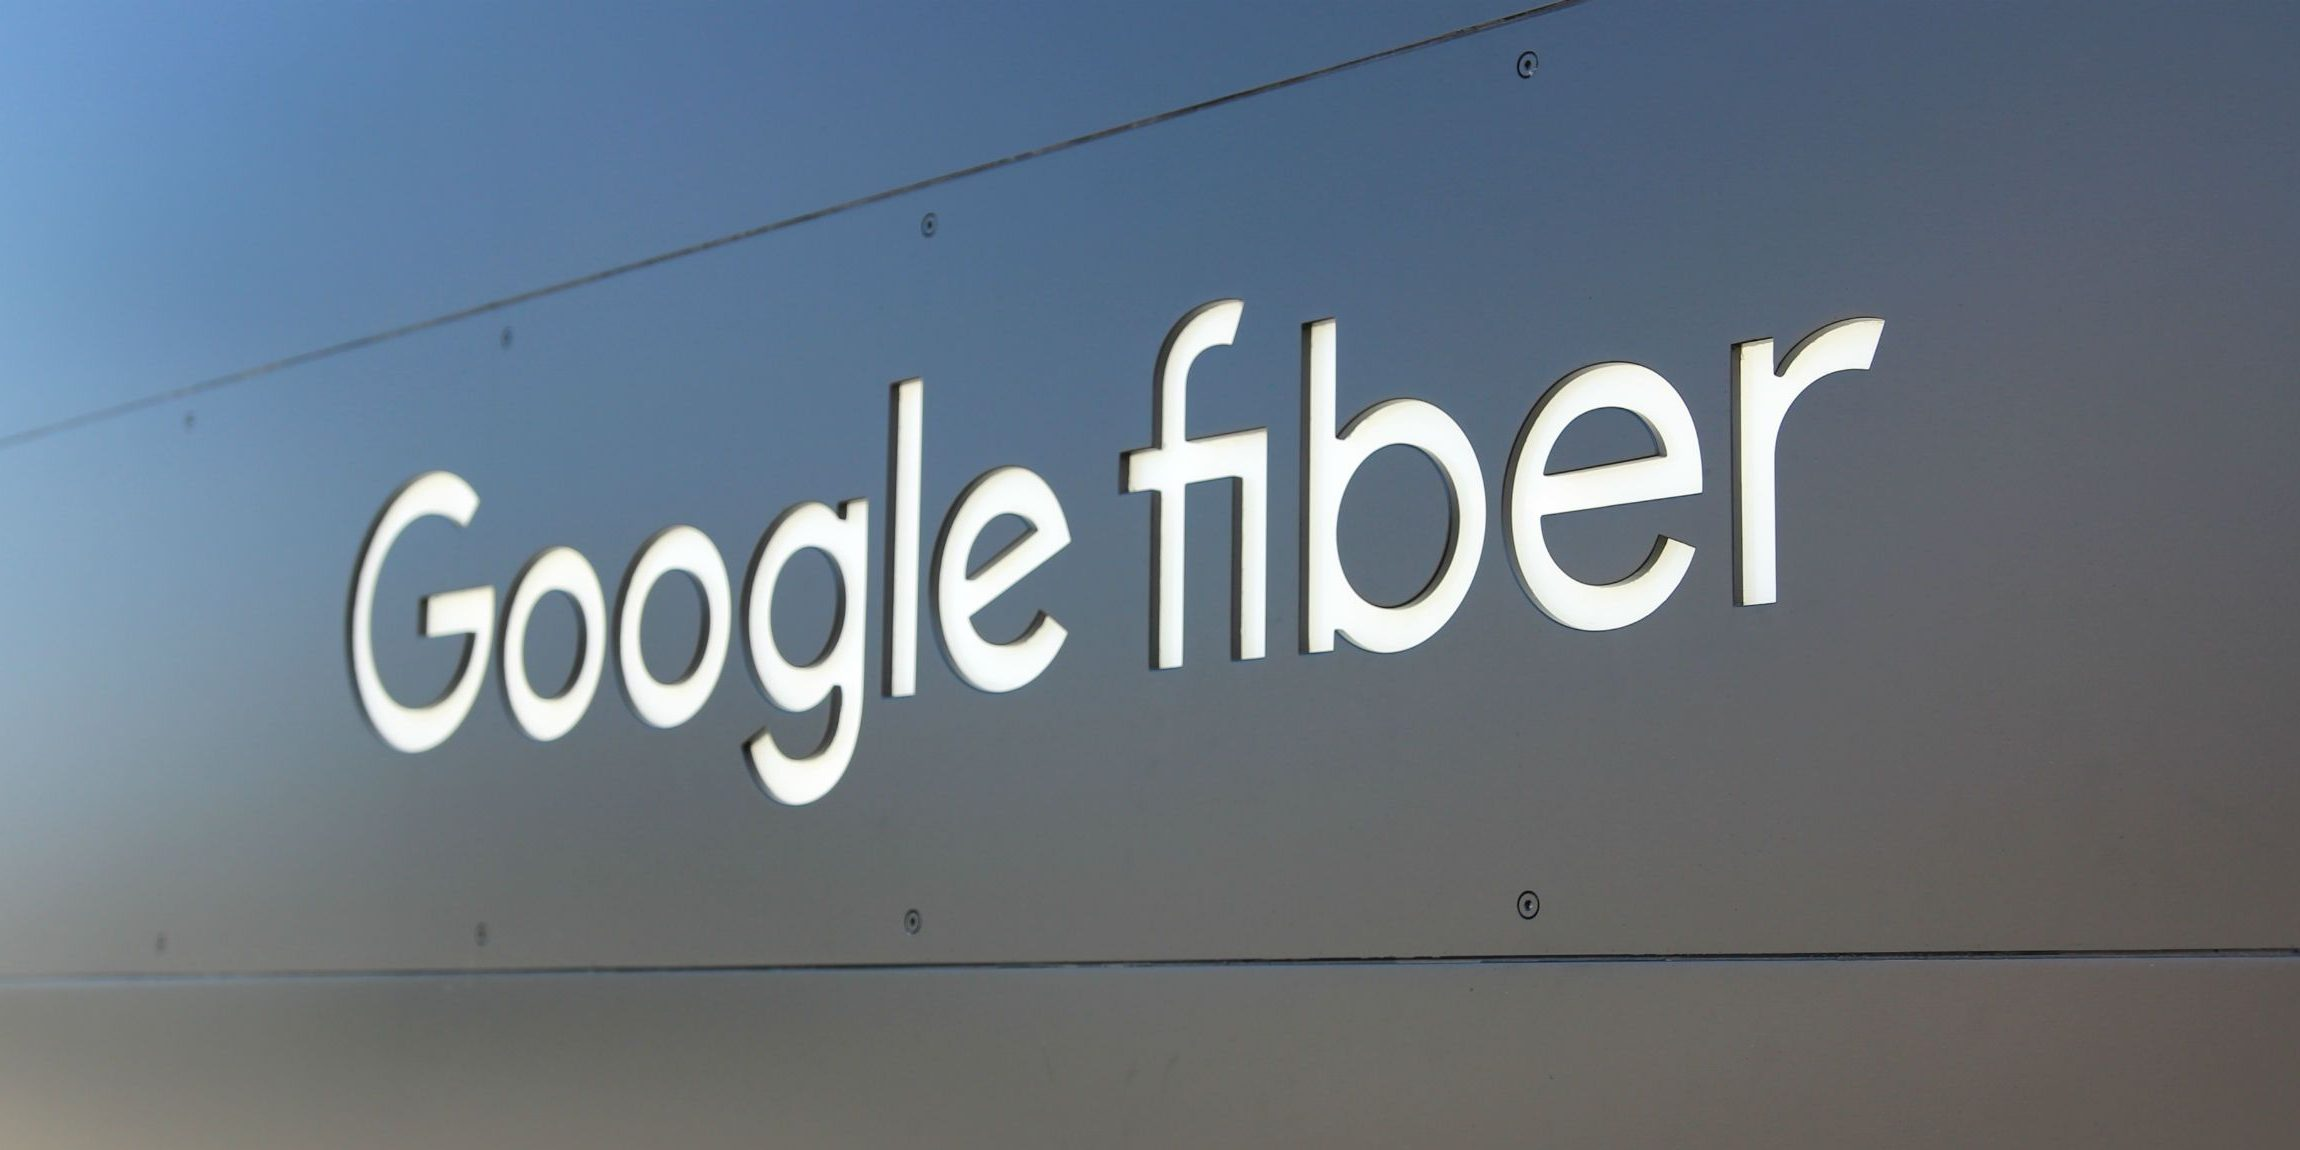 Google Fiber pulling out of Louisville set to cost $4 million